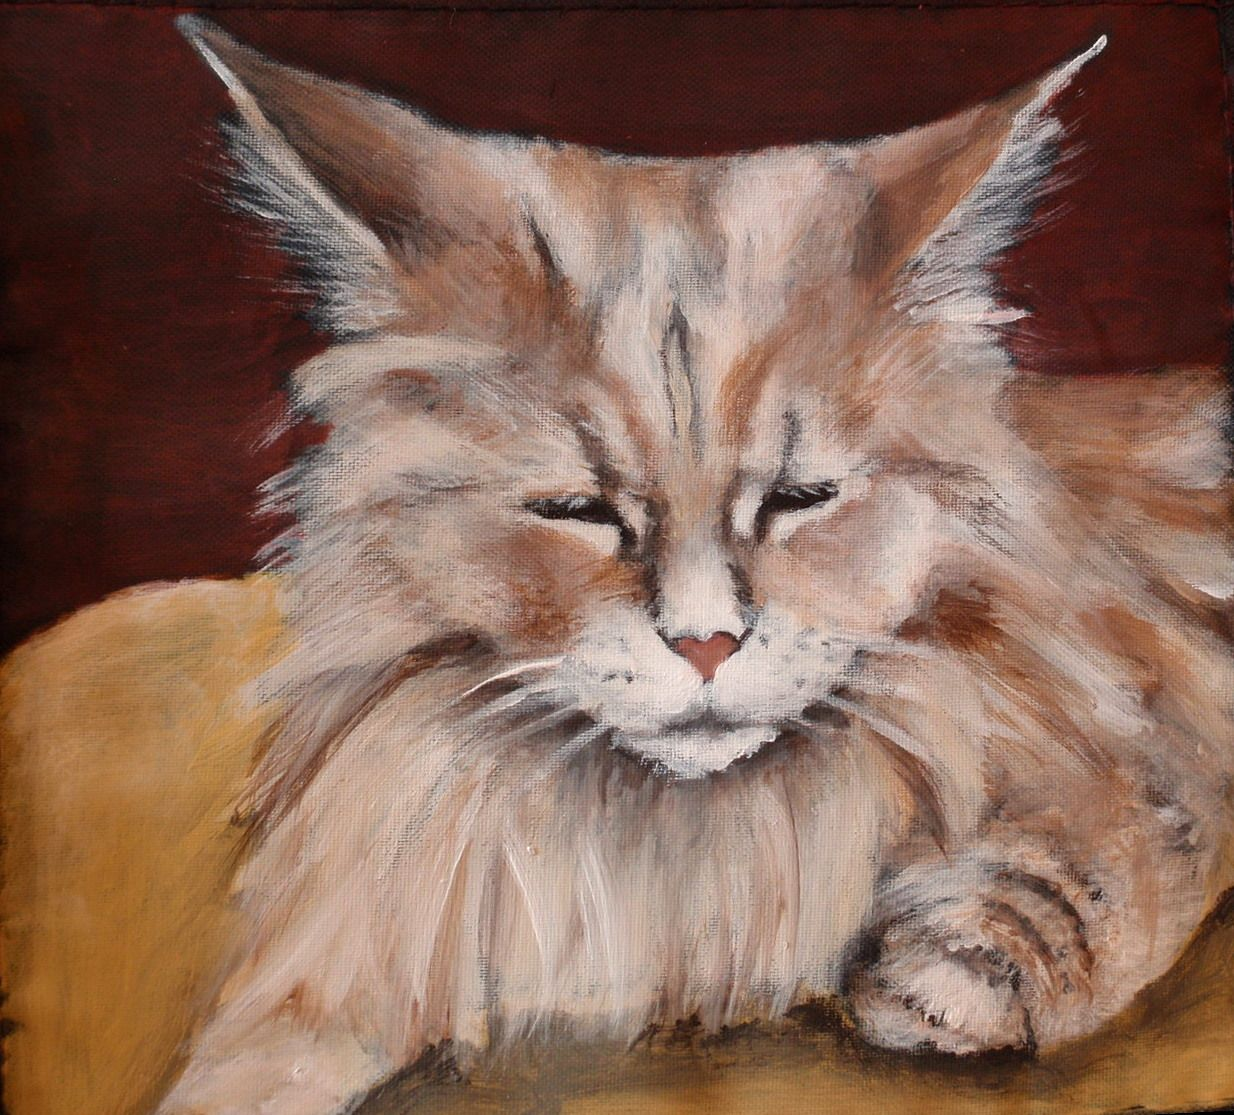 Leo is a long haired orange tabby cat painted on a lunch